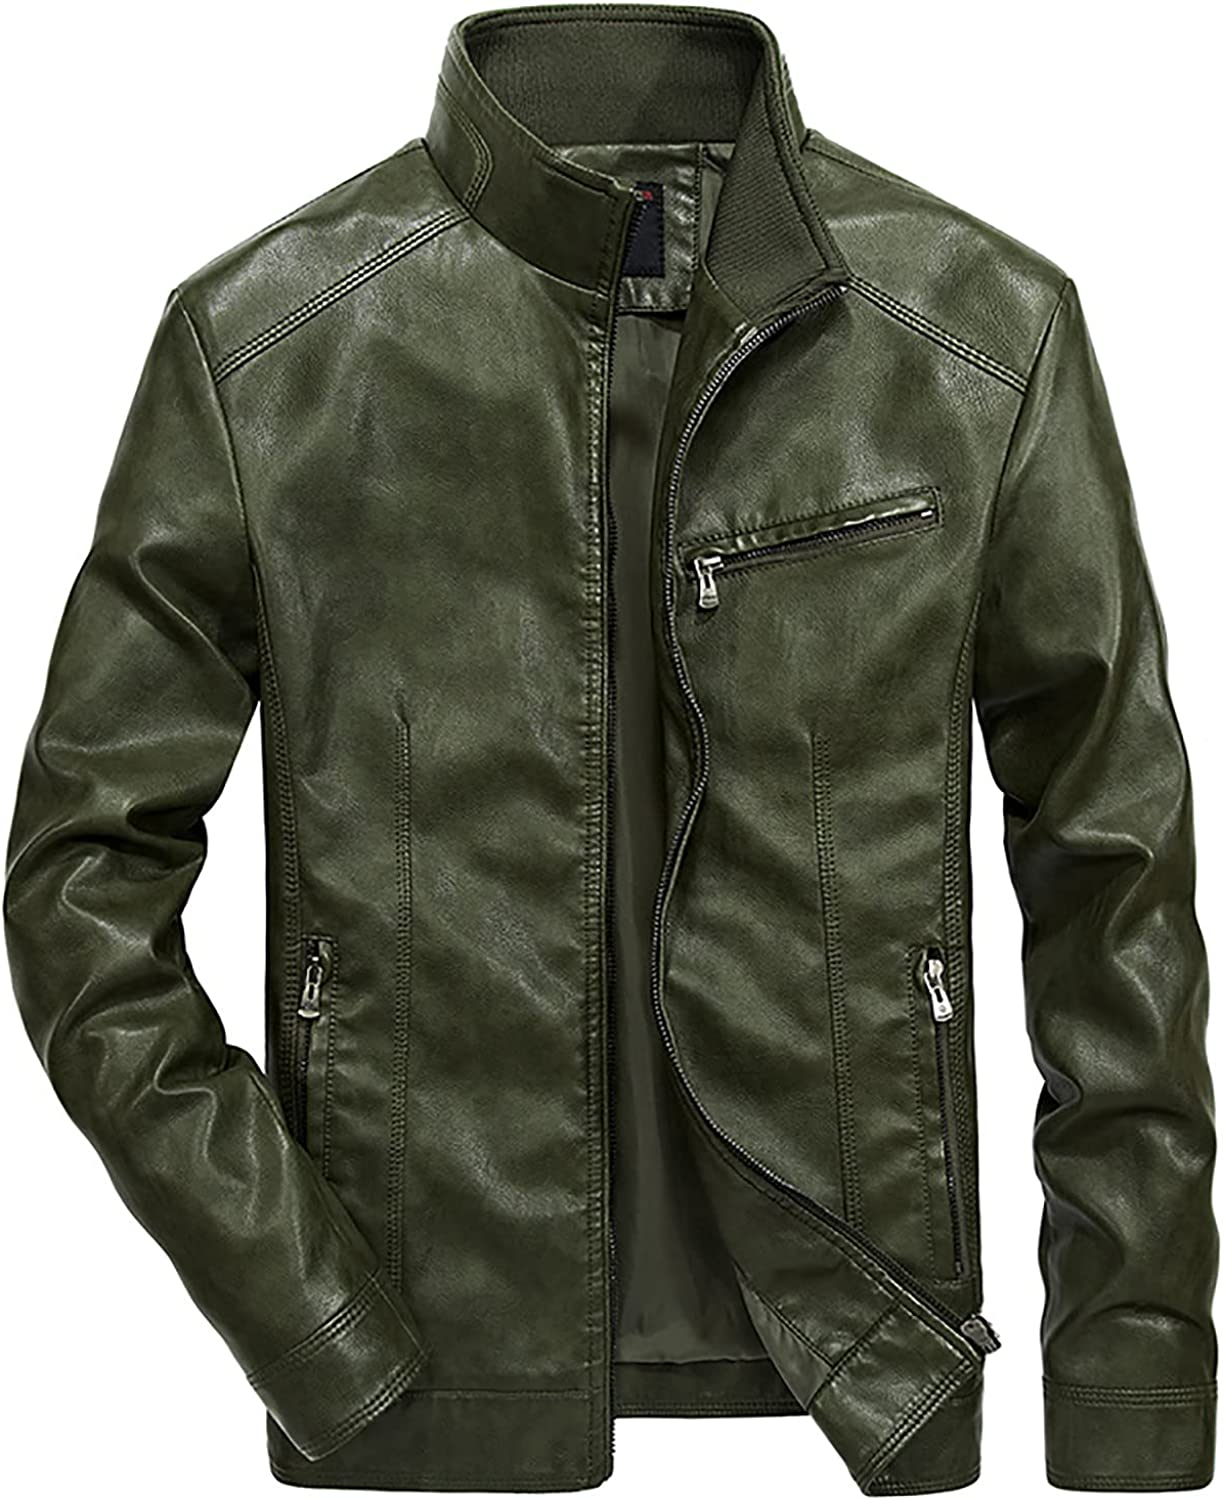 Men's Vintage Stand Collar Pu Leather Jacket Tactical Outerwear Full-Zip Slim Leather Jacket for Men